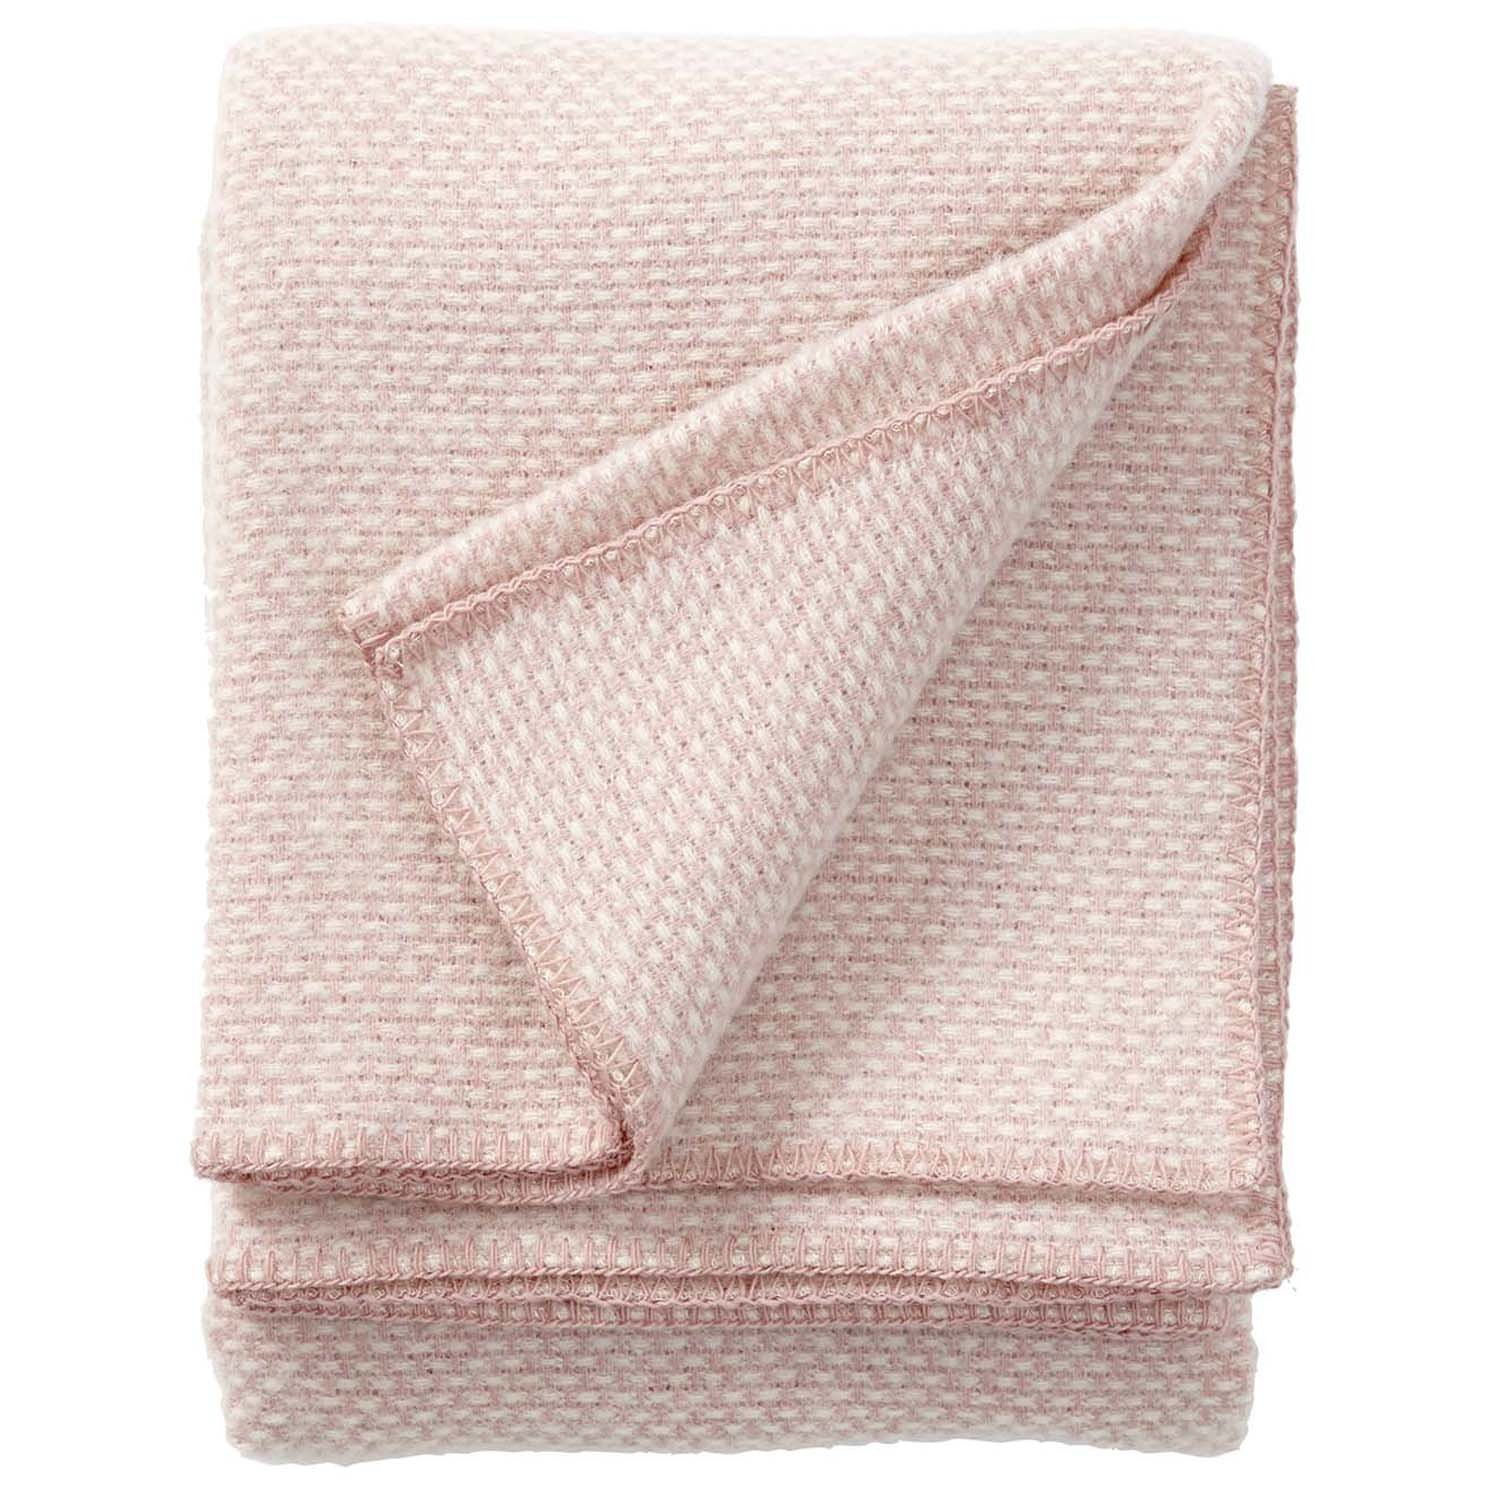 Klippan Domino Classic Throws and Blankets, Pink, 180 x 130 x 0.5 cm 7340032214390